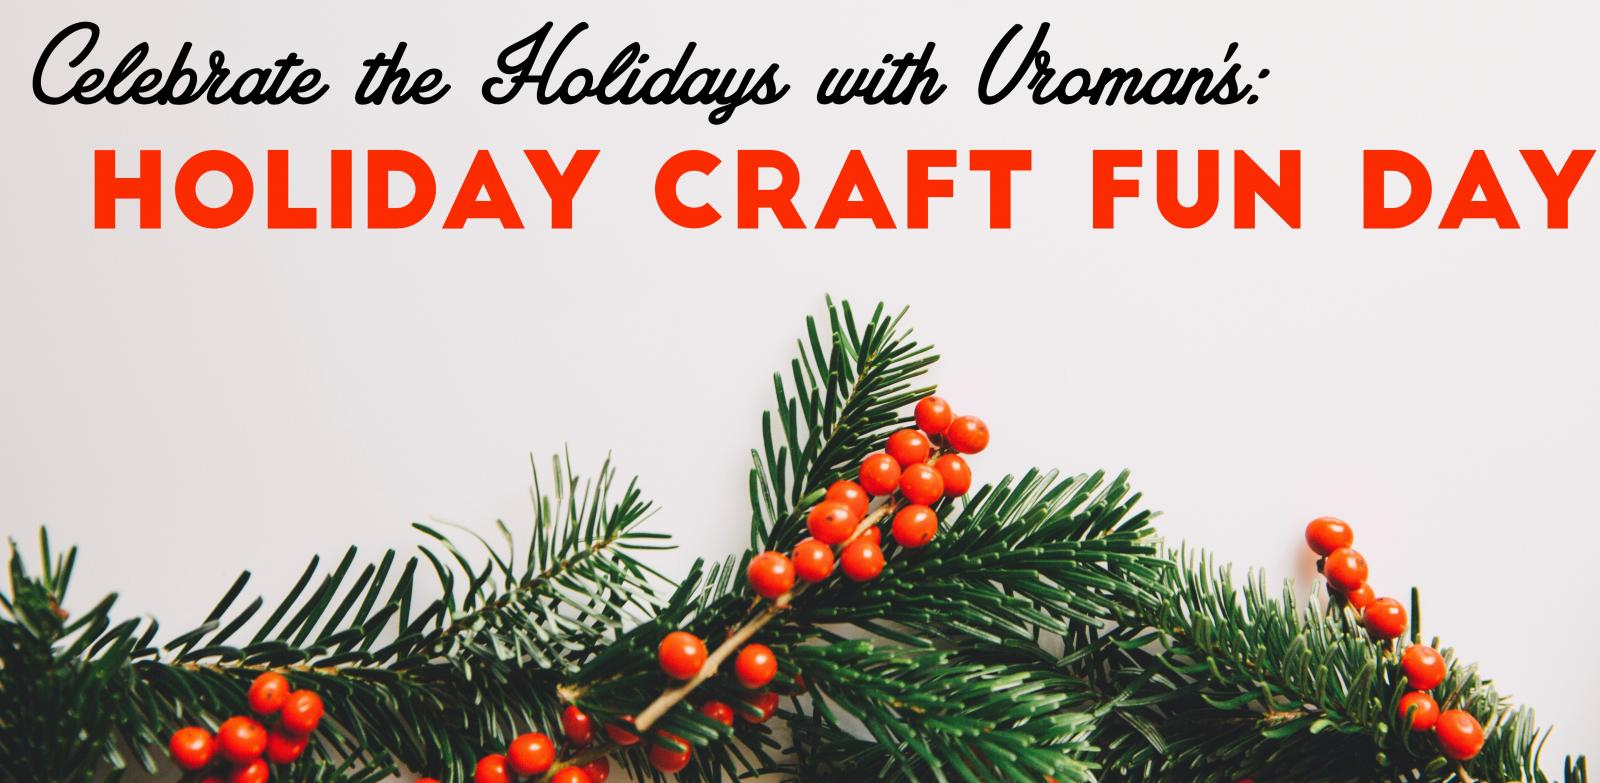 Celebrate the Holidays with Vroman's: Holiday Craft Fun Day!